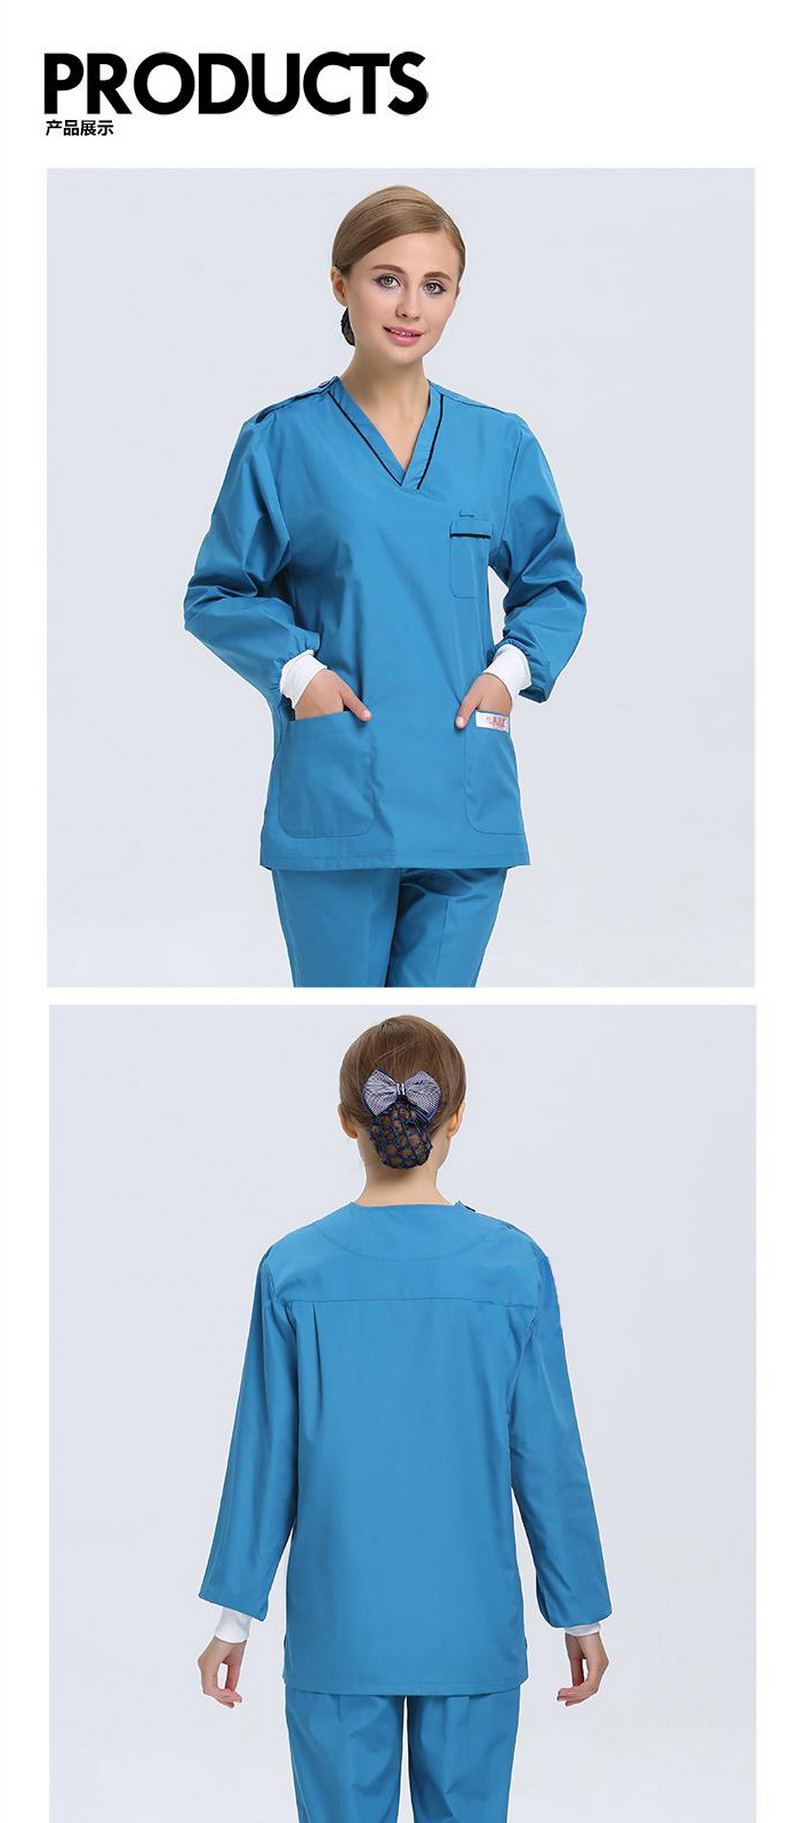 Aliexpress.com : Buy Viaoli Hospital Man and Woman Surgical Gown ...